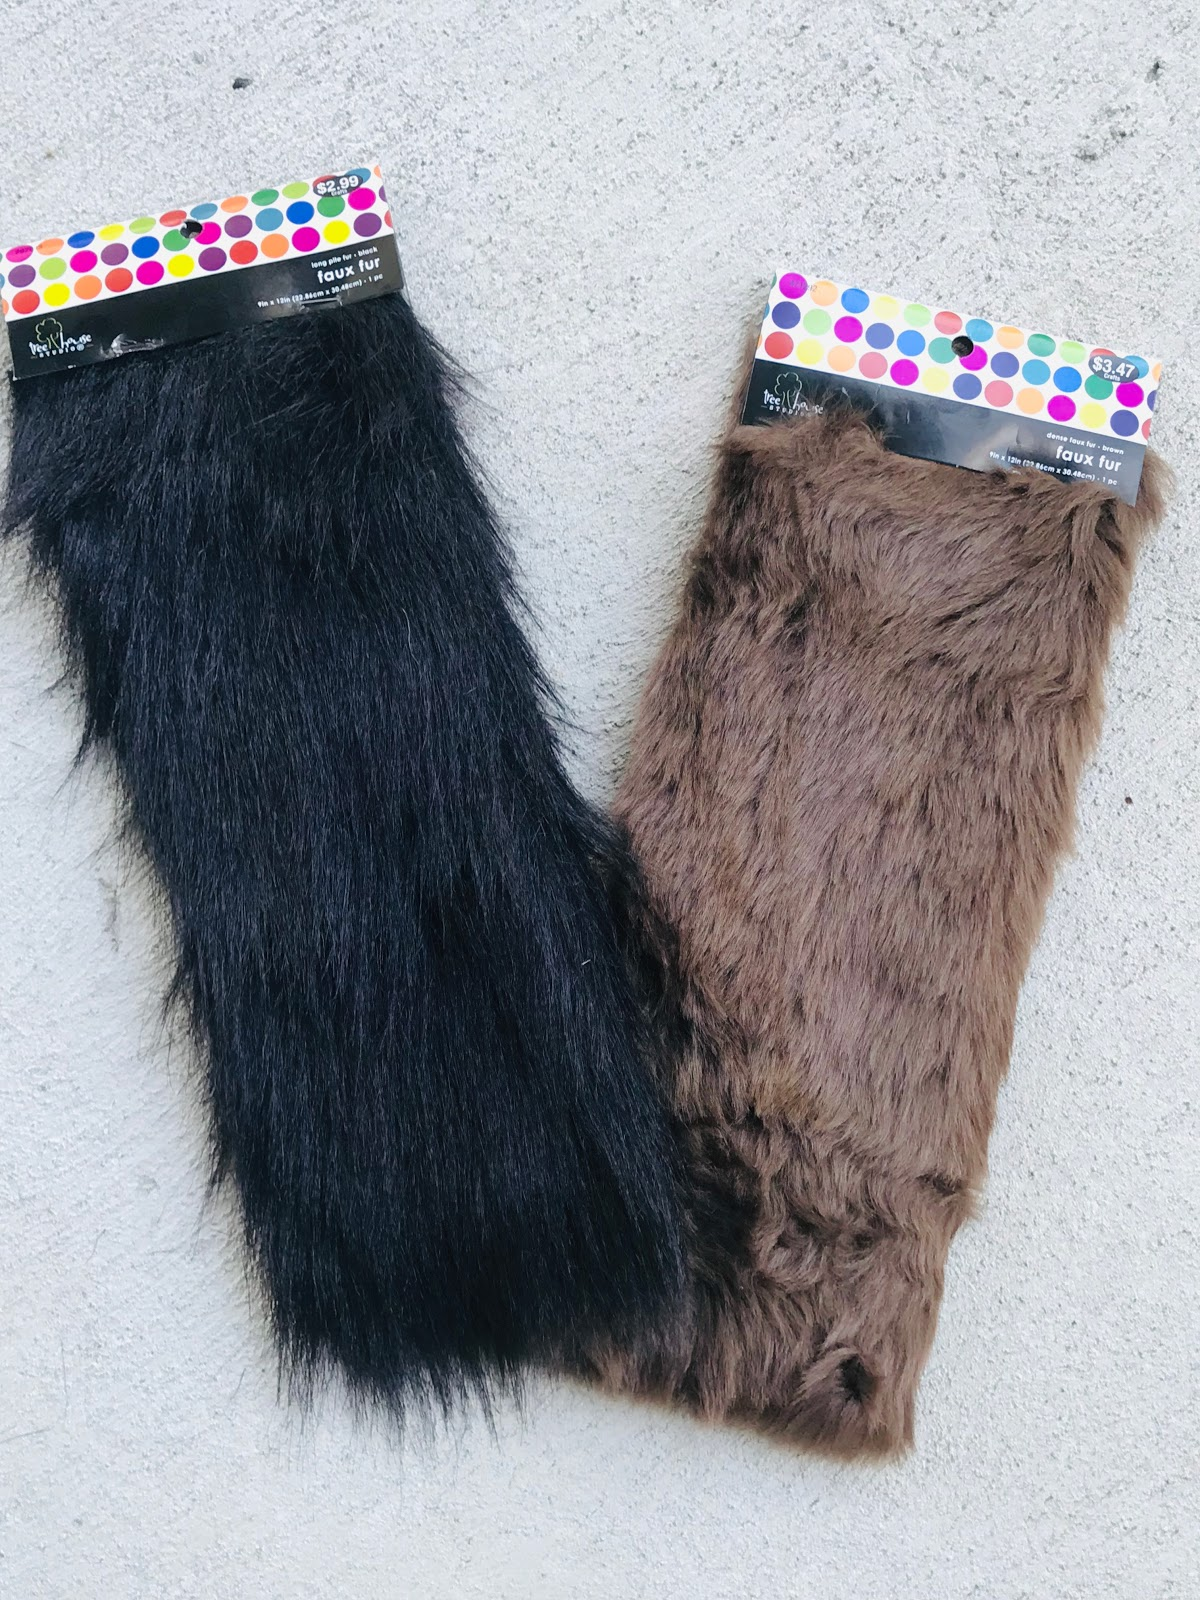 Image: Faux Fur Materials needed to make clutch bags at home. Do It Yourself Project